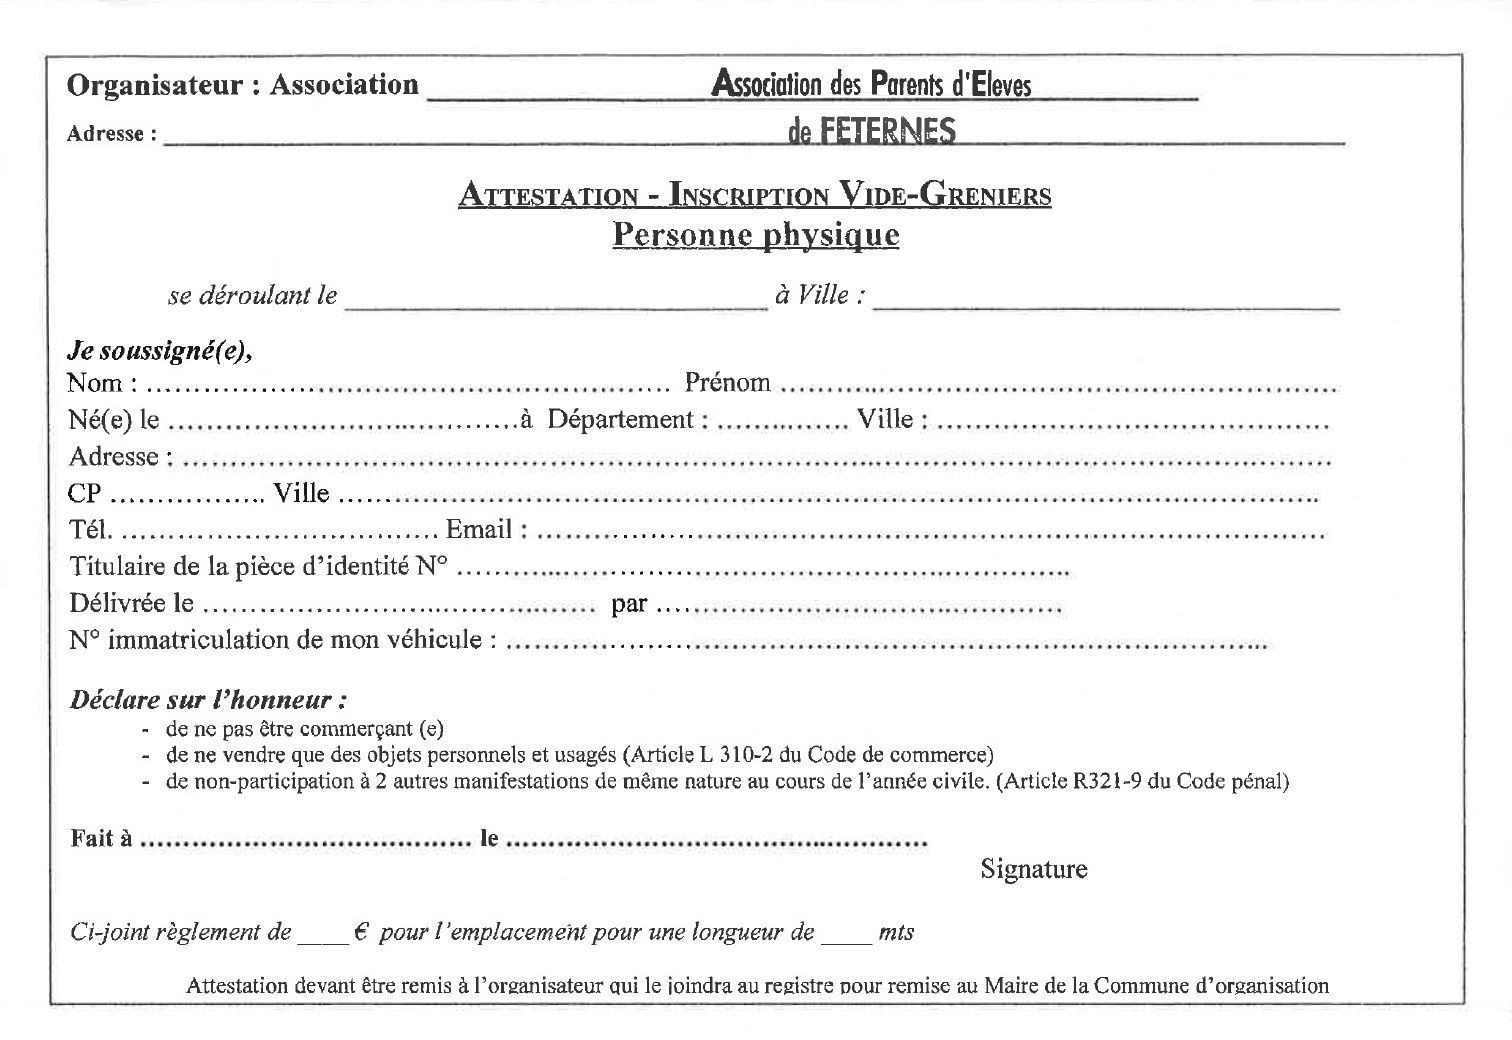 Attestation inscription vide grenier